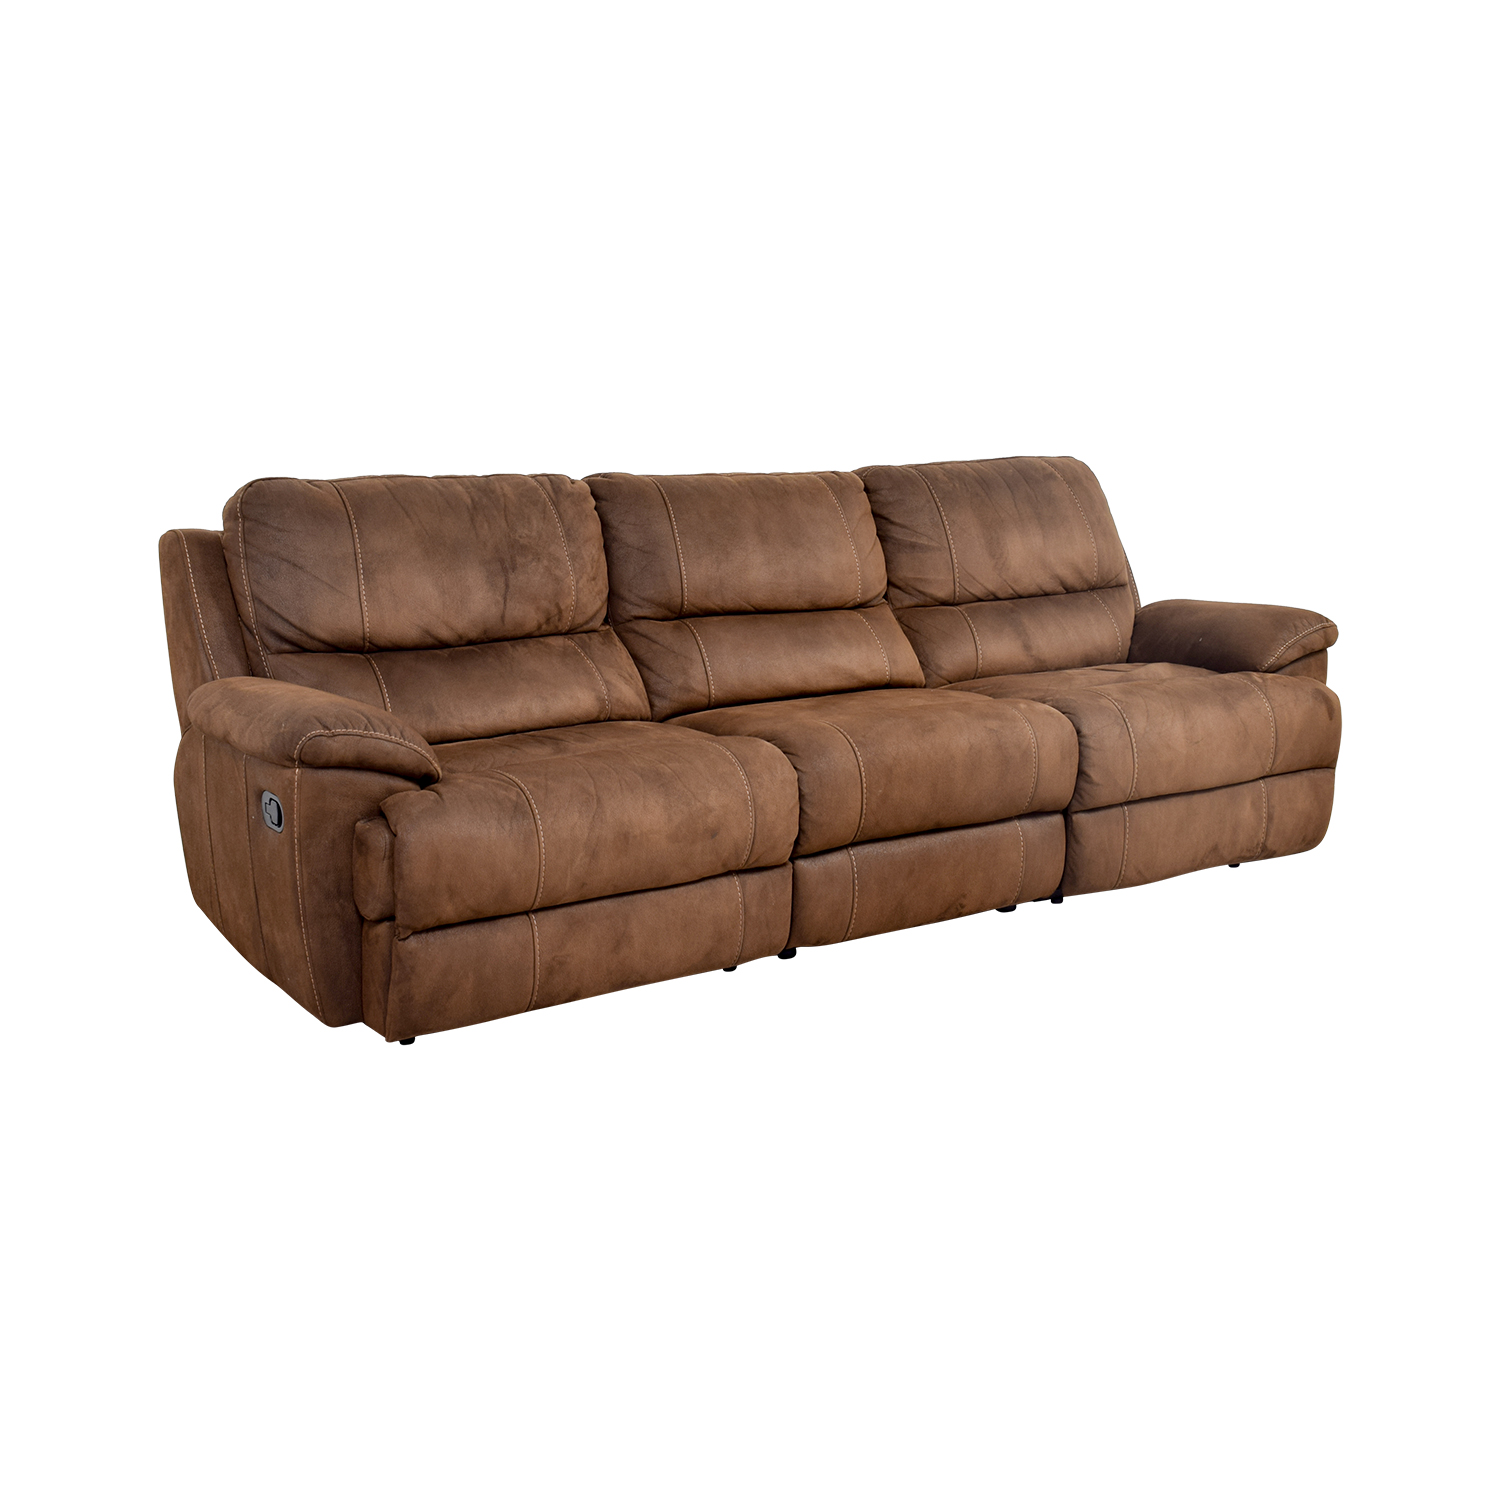 88% OFF - Havertys Haverty's Reclining Sofa / Sofas